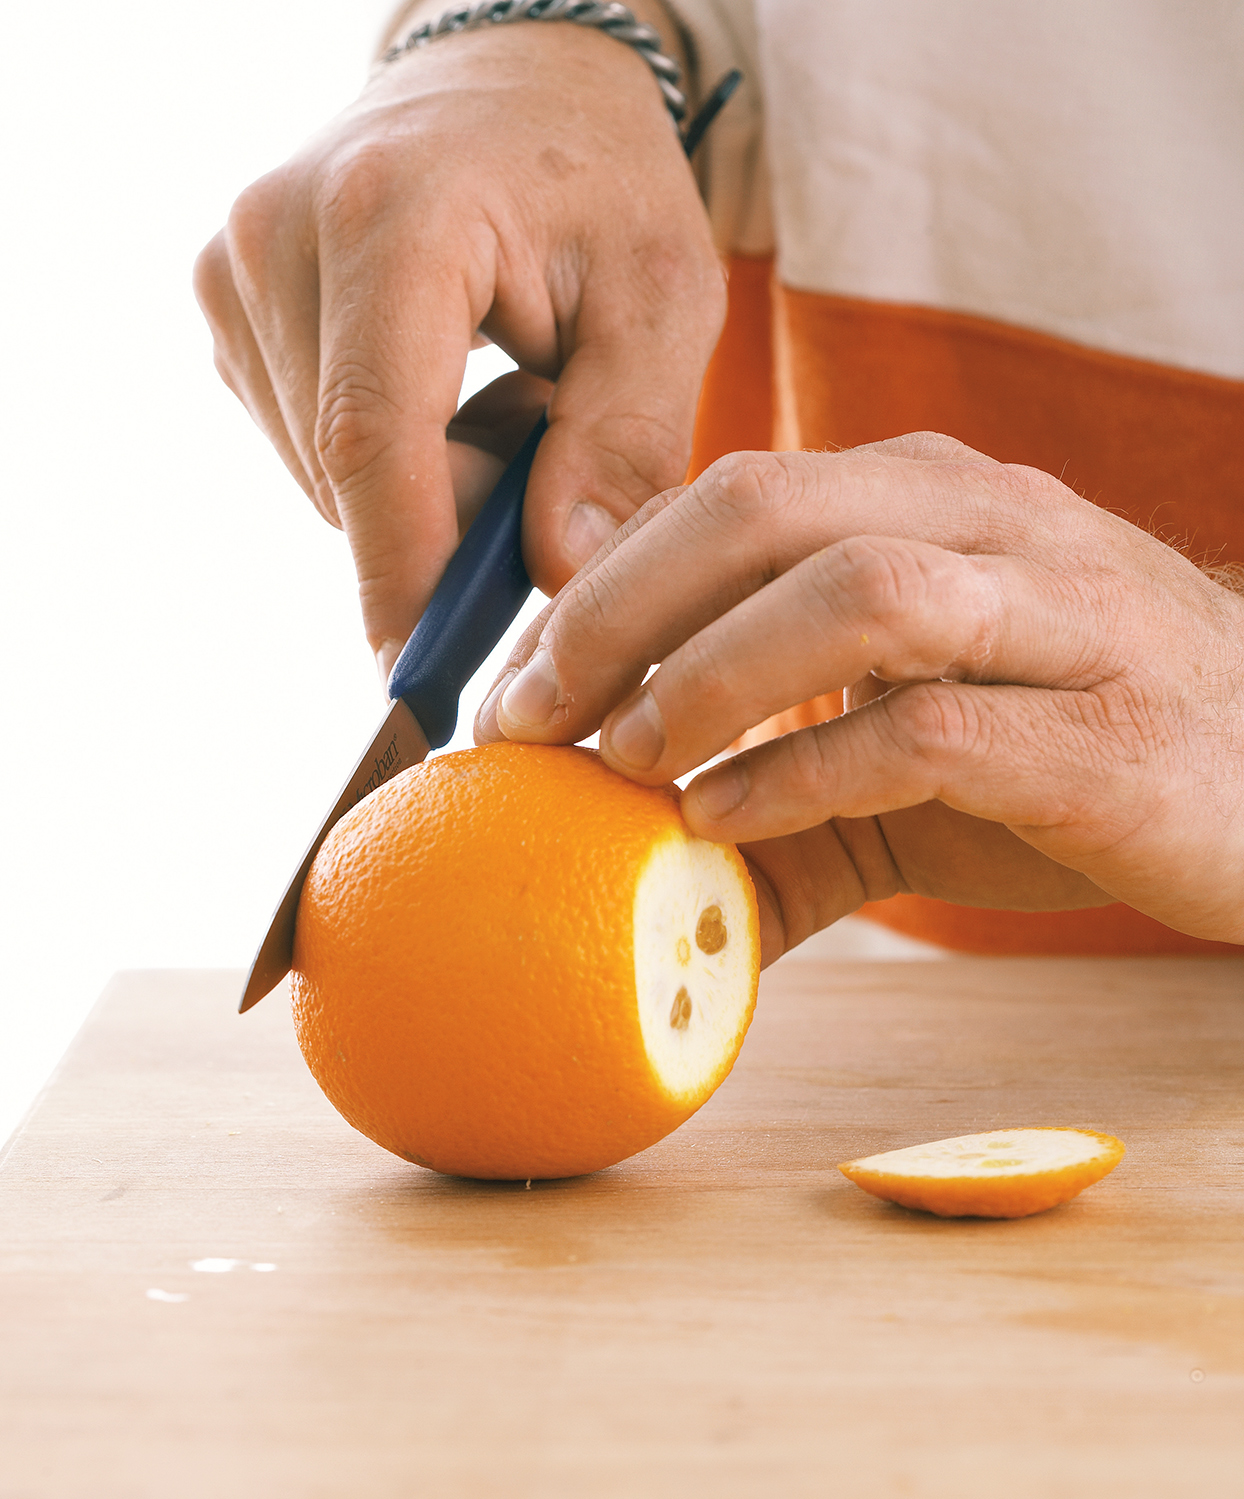 trimming ends from whole orange